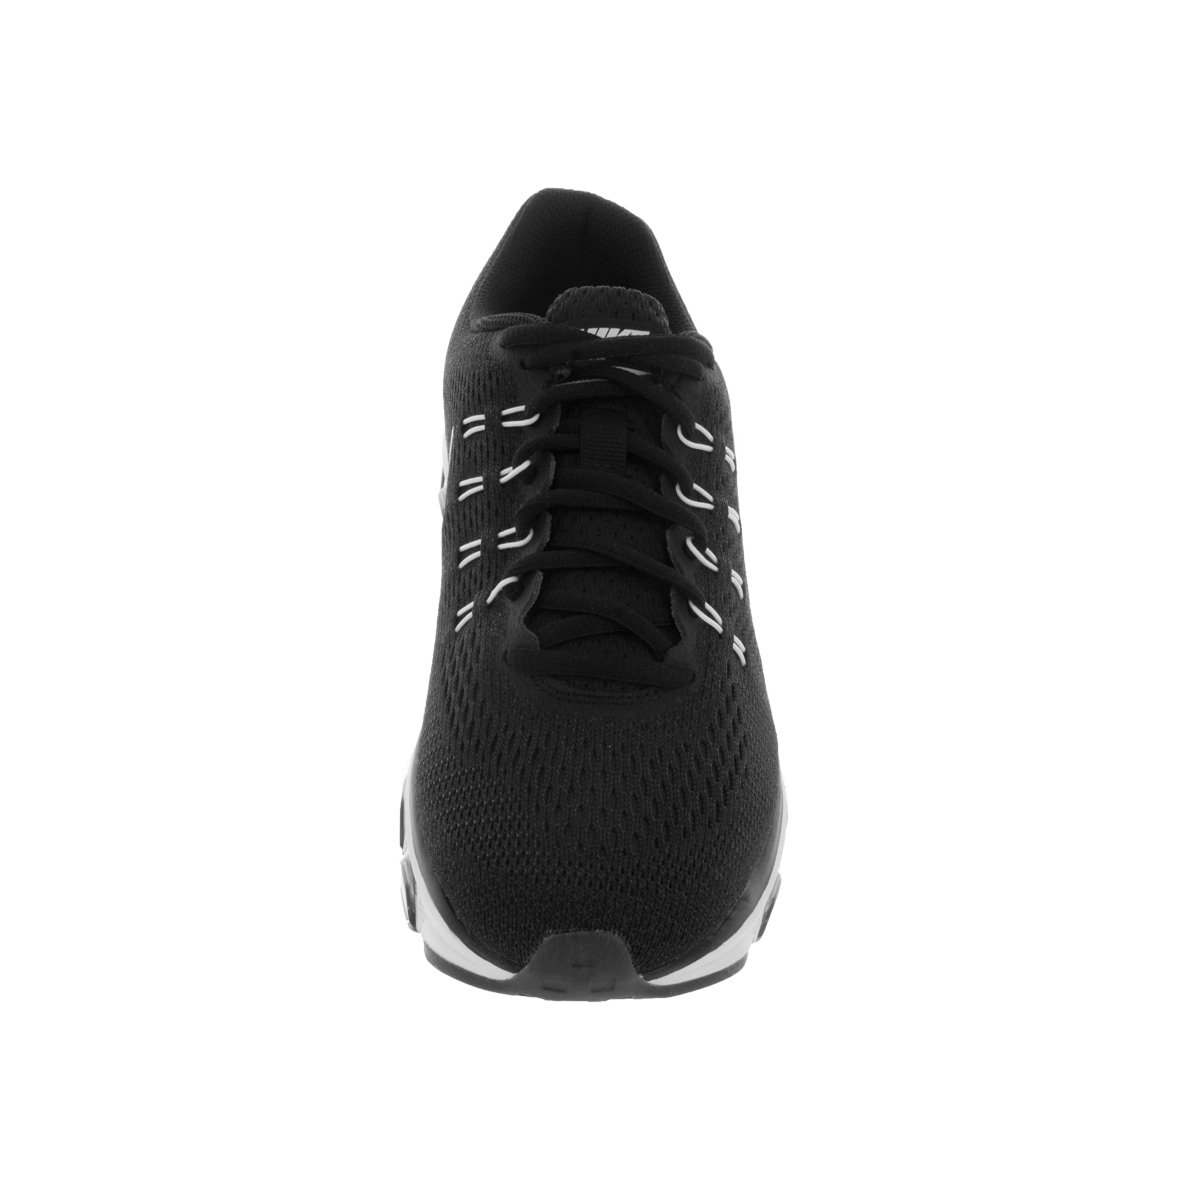 los angeles e0861 17482 Shop Nike Women s Air Max Tailwind 8 Black and White Synthetic Running Shoes  - Free Shipping Today - Overstock.com - 13313255